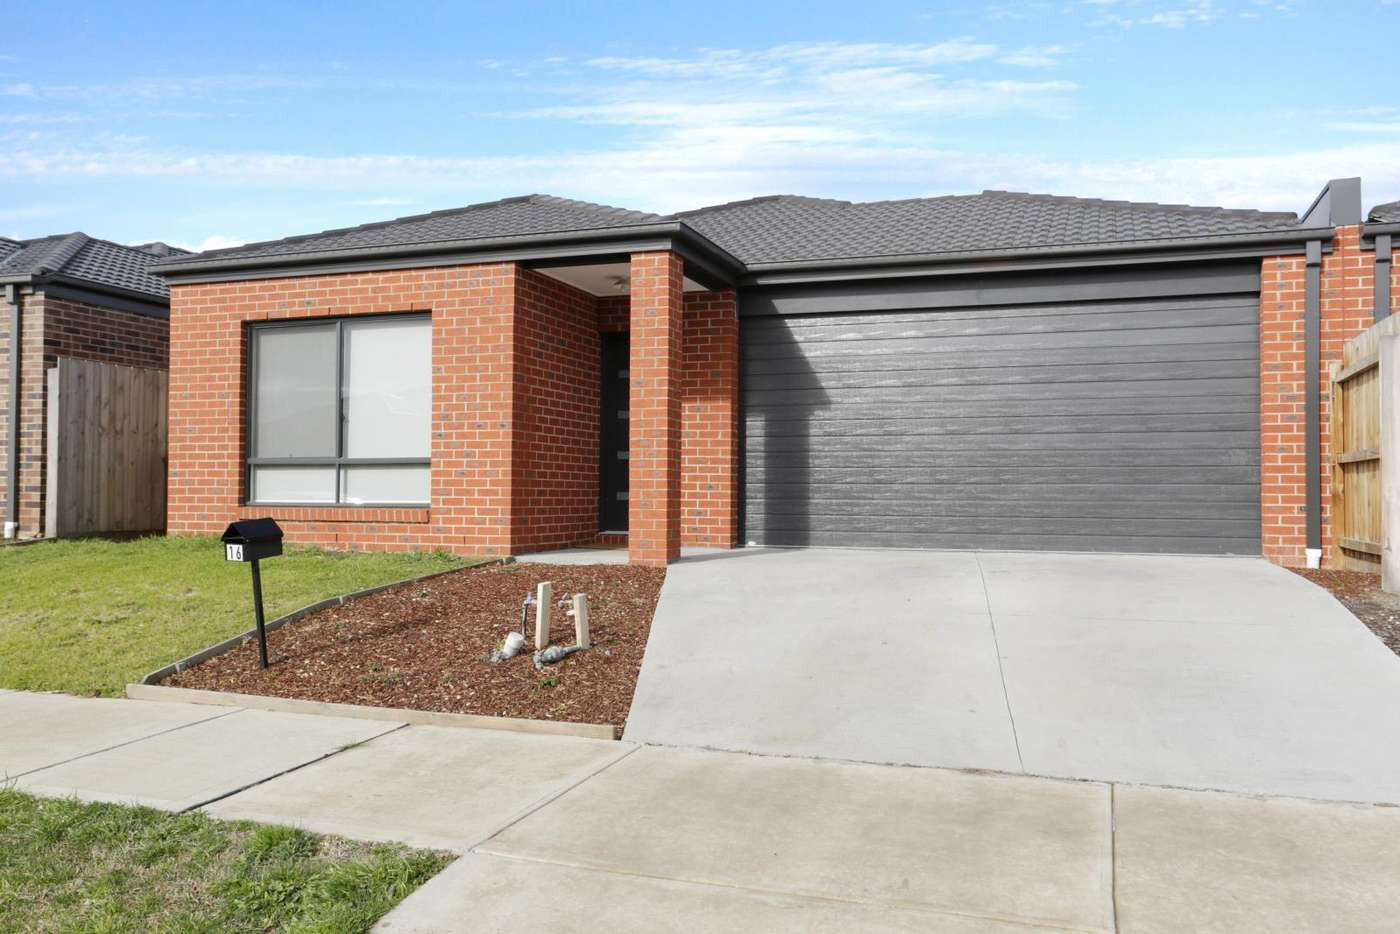 Main view of Homely house listing, 16 Chevrolet Road, Cranbourne East VIC 3977